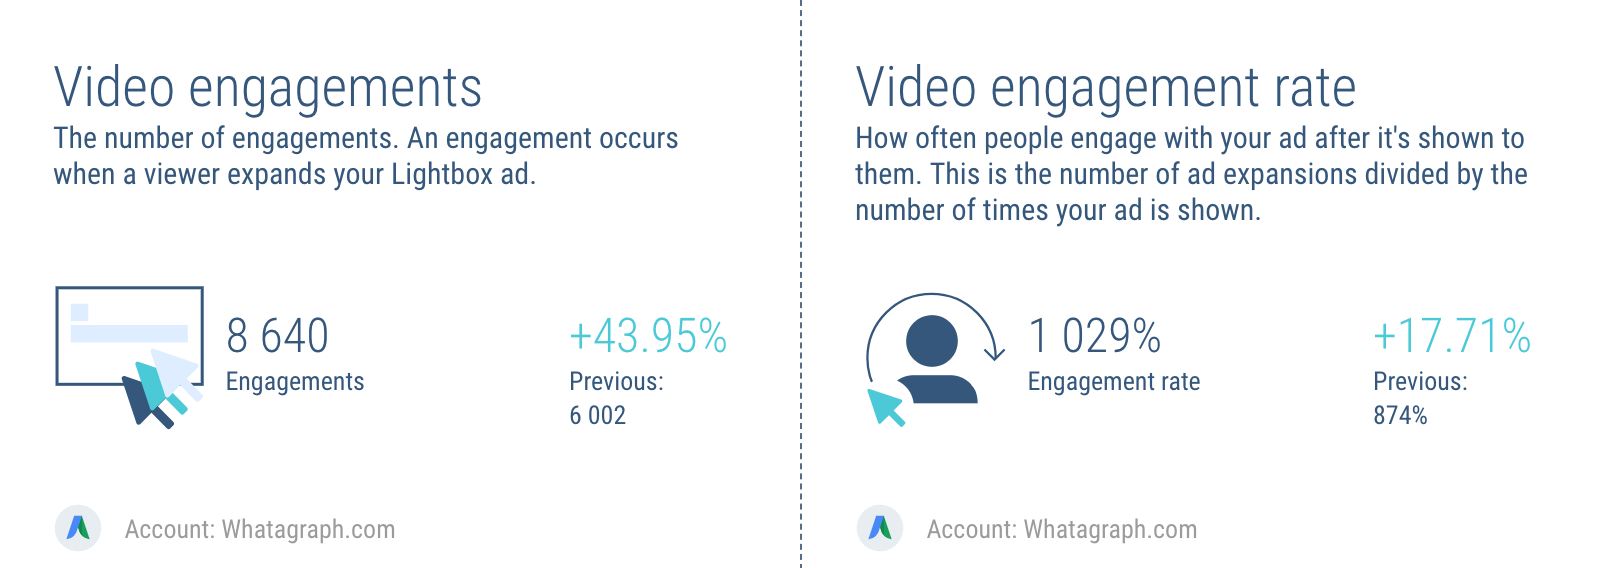 AdWords video engagement